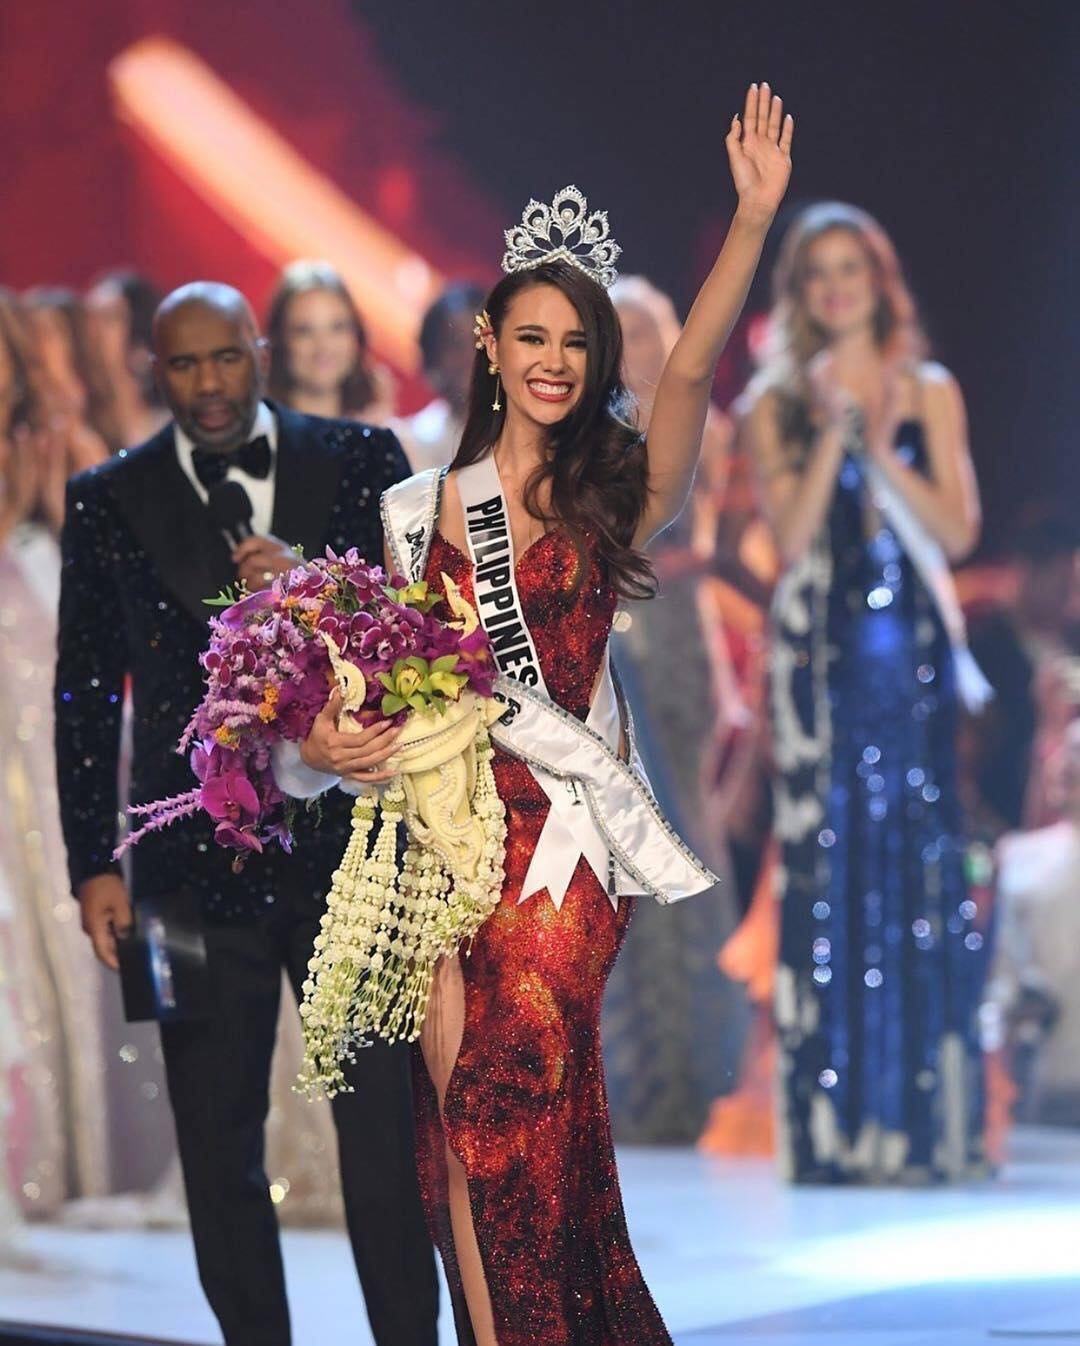 The transgender Miss Universe contestant got a standing ovation